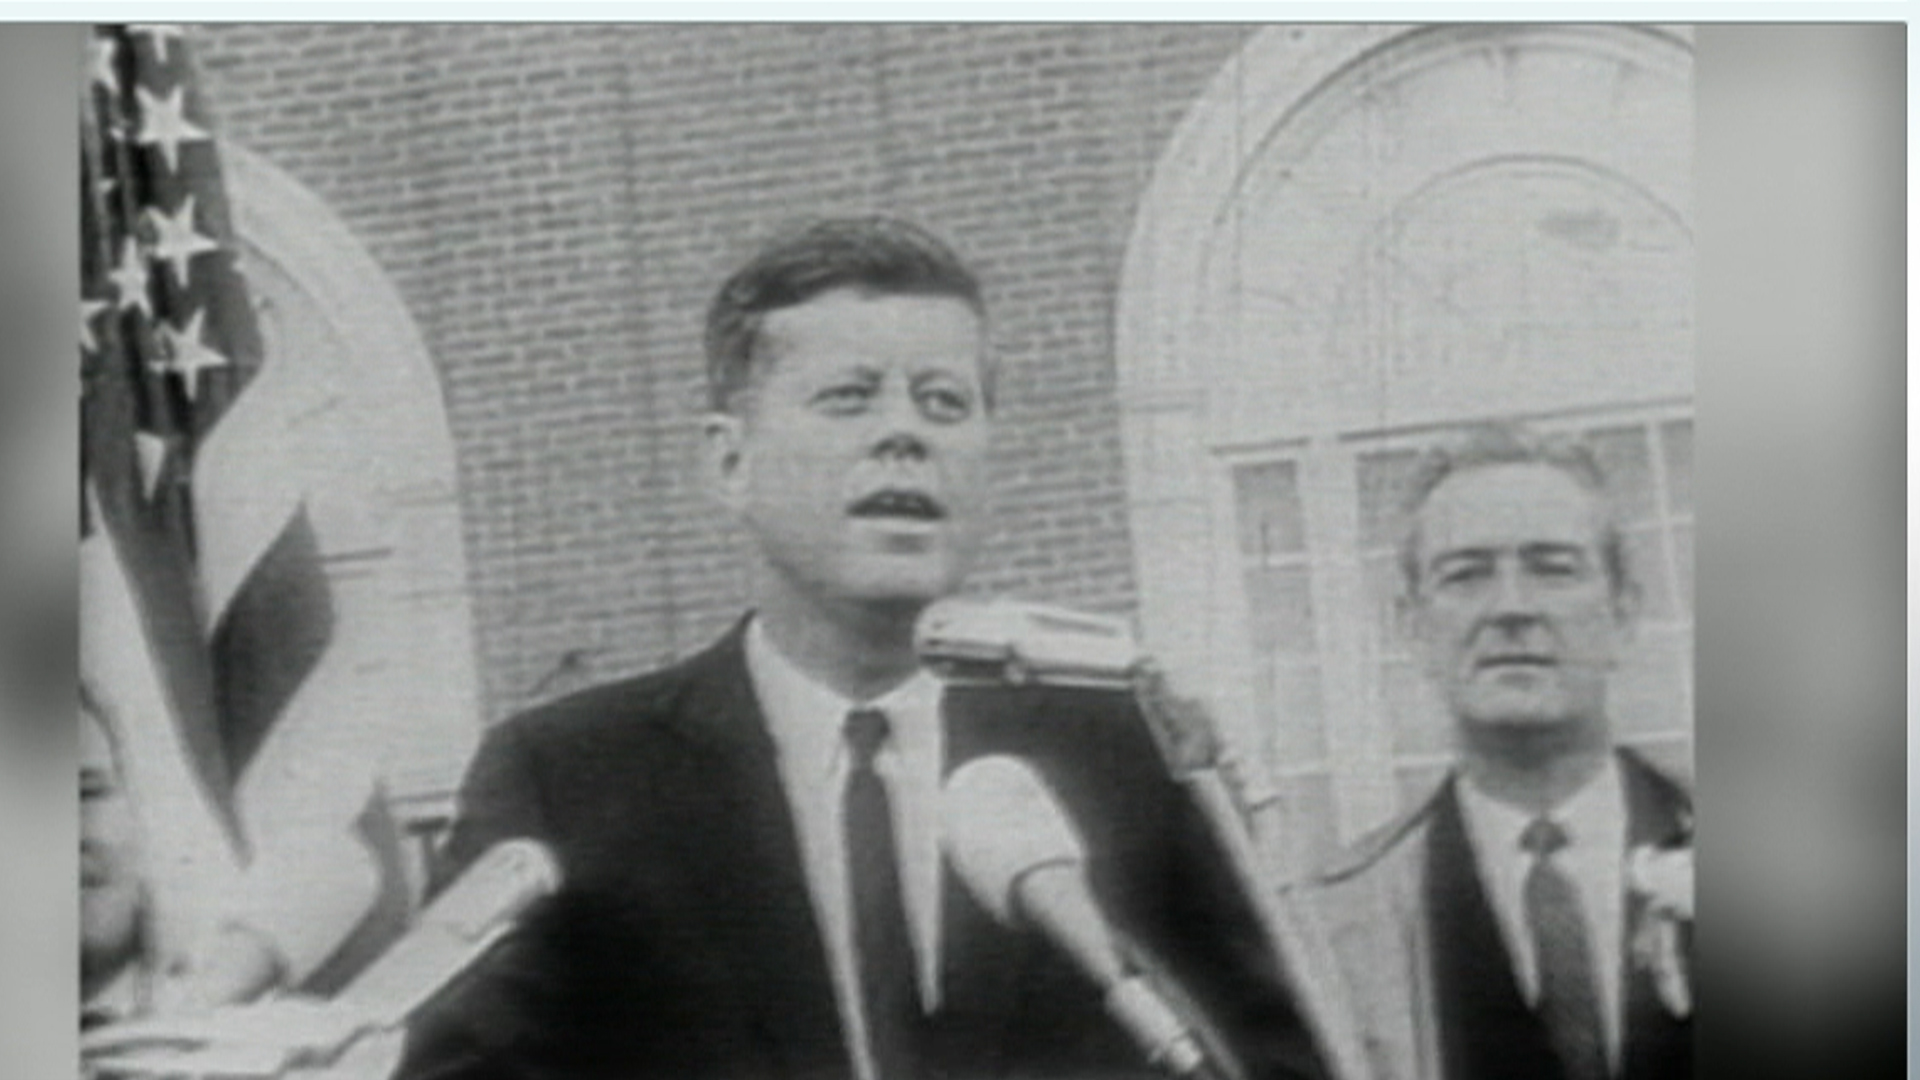 Book imagines JFK's first, second terms